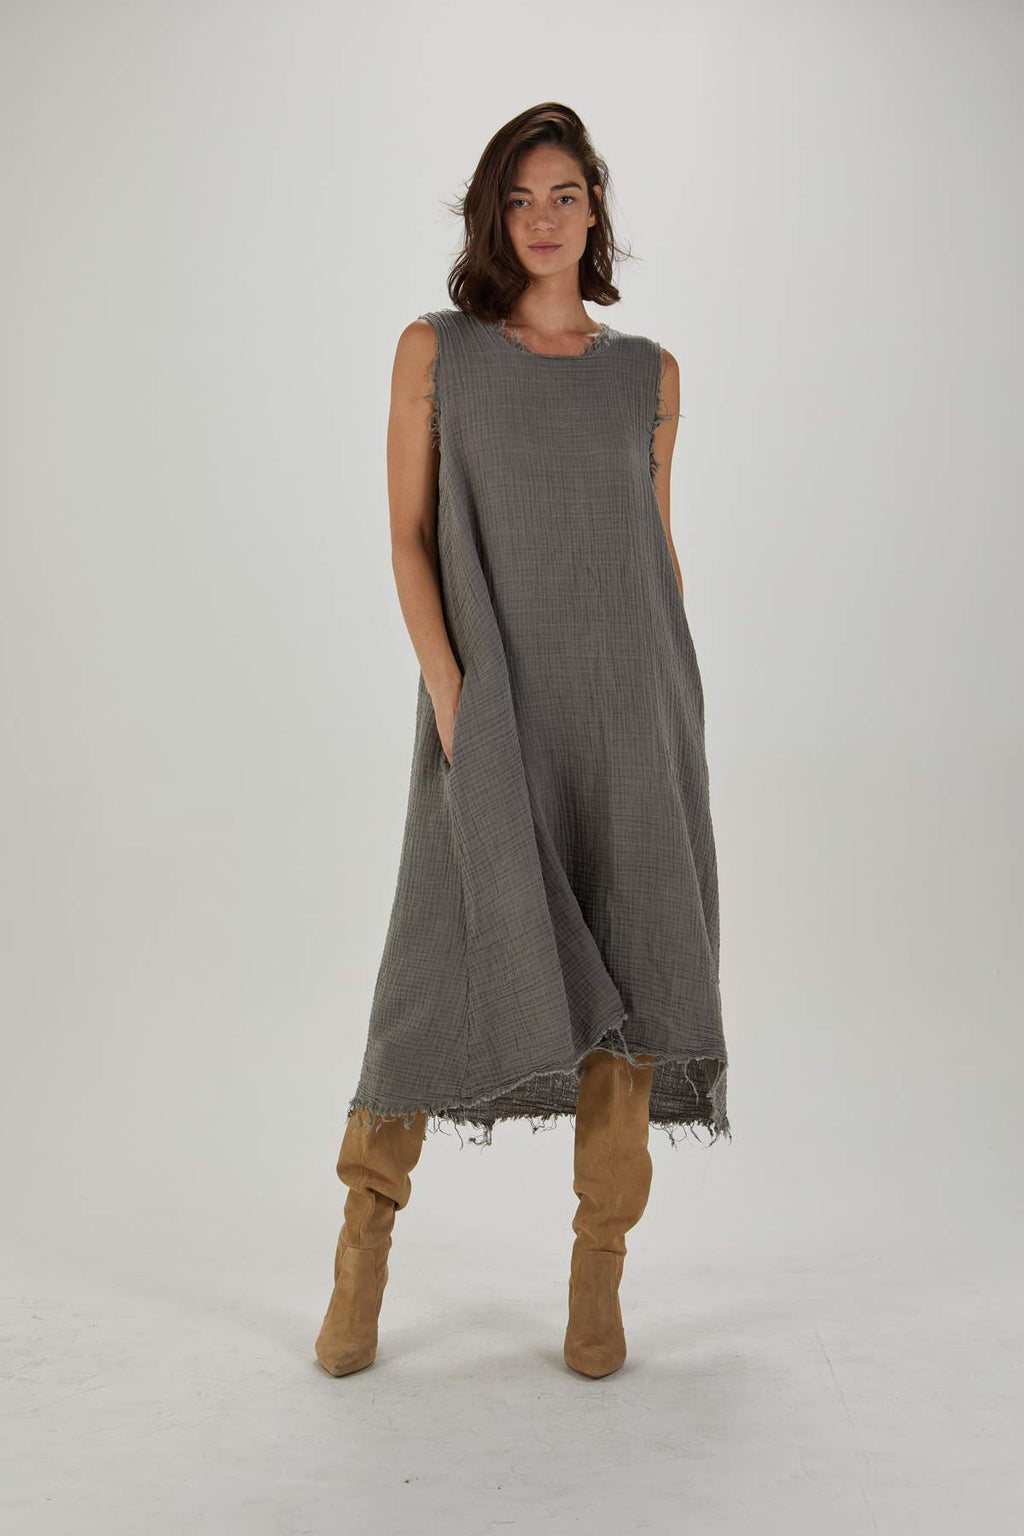 Q House of Basics Carol Dress in Stone